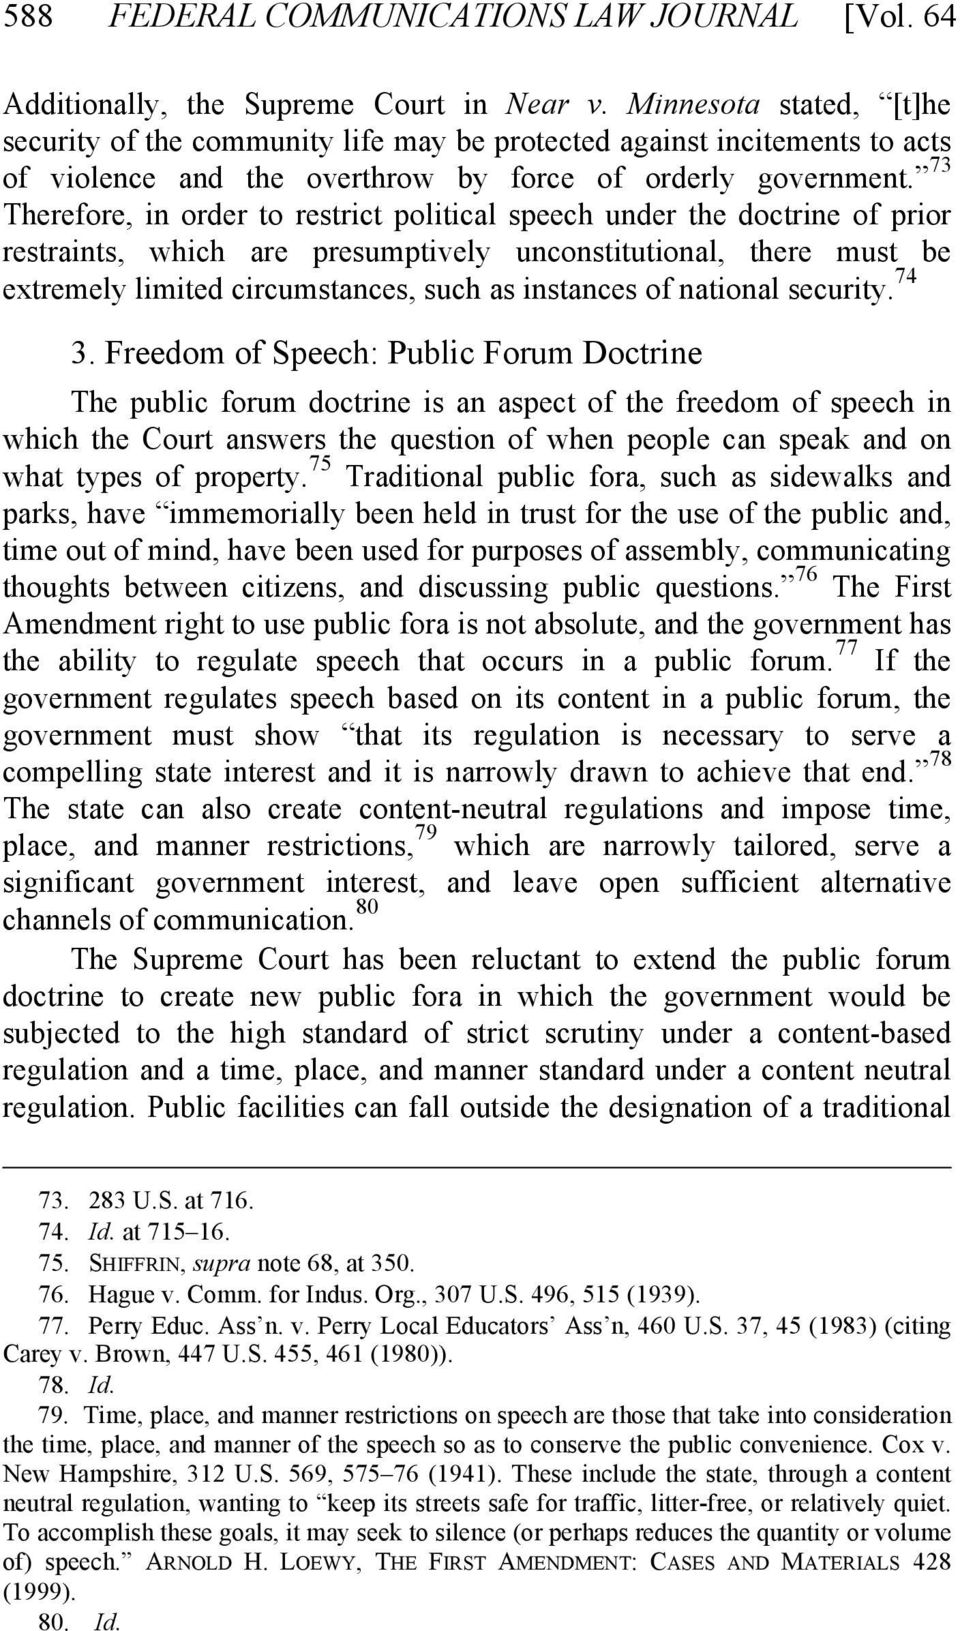 73 Therefore, in order to restrict political speech under the doctrine of prior restraints, which are presumptively unconstitutional, there must be extremely limited circumstances, such as instances